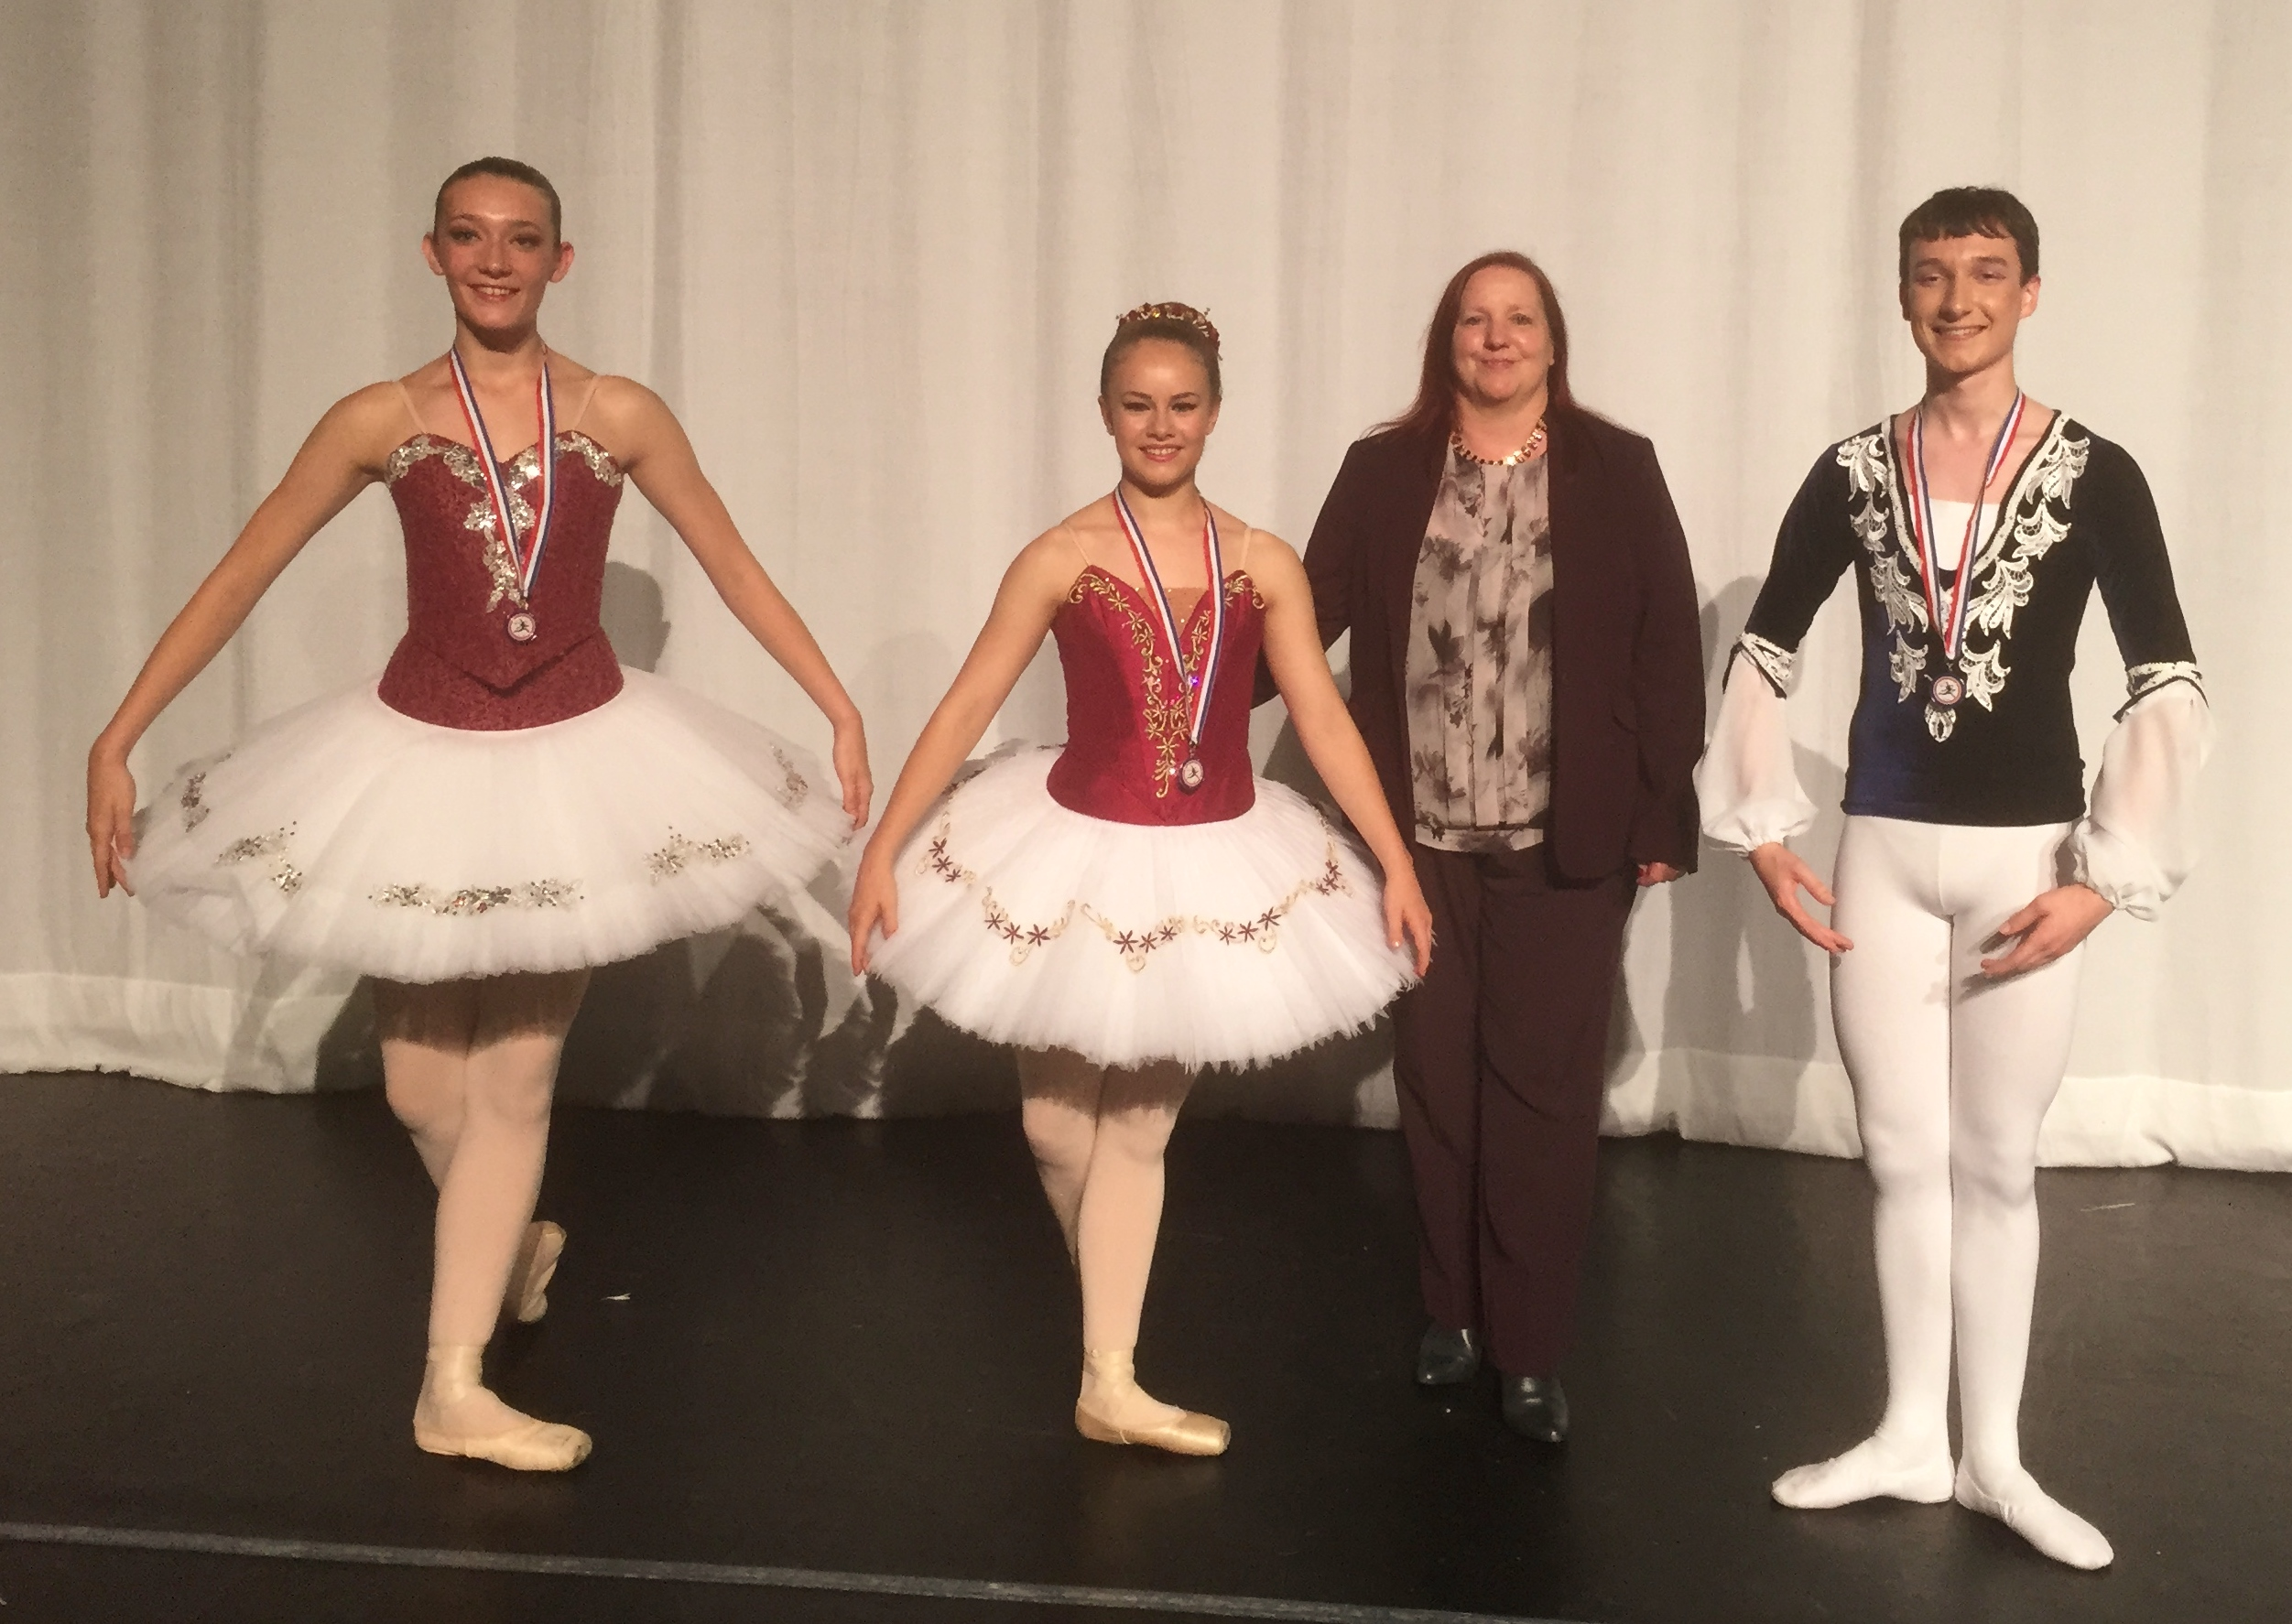 Emily Gardiner (Centre) Winner, Thomas Matthews (Right) Runner Up